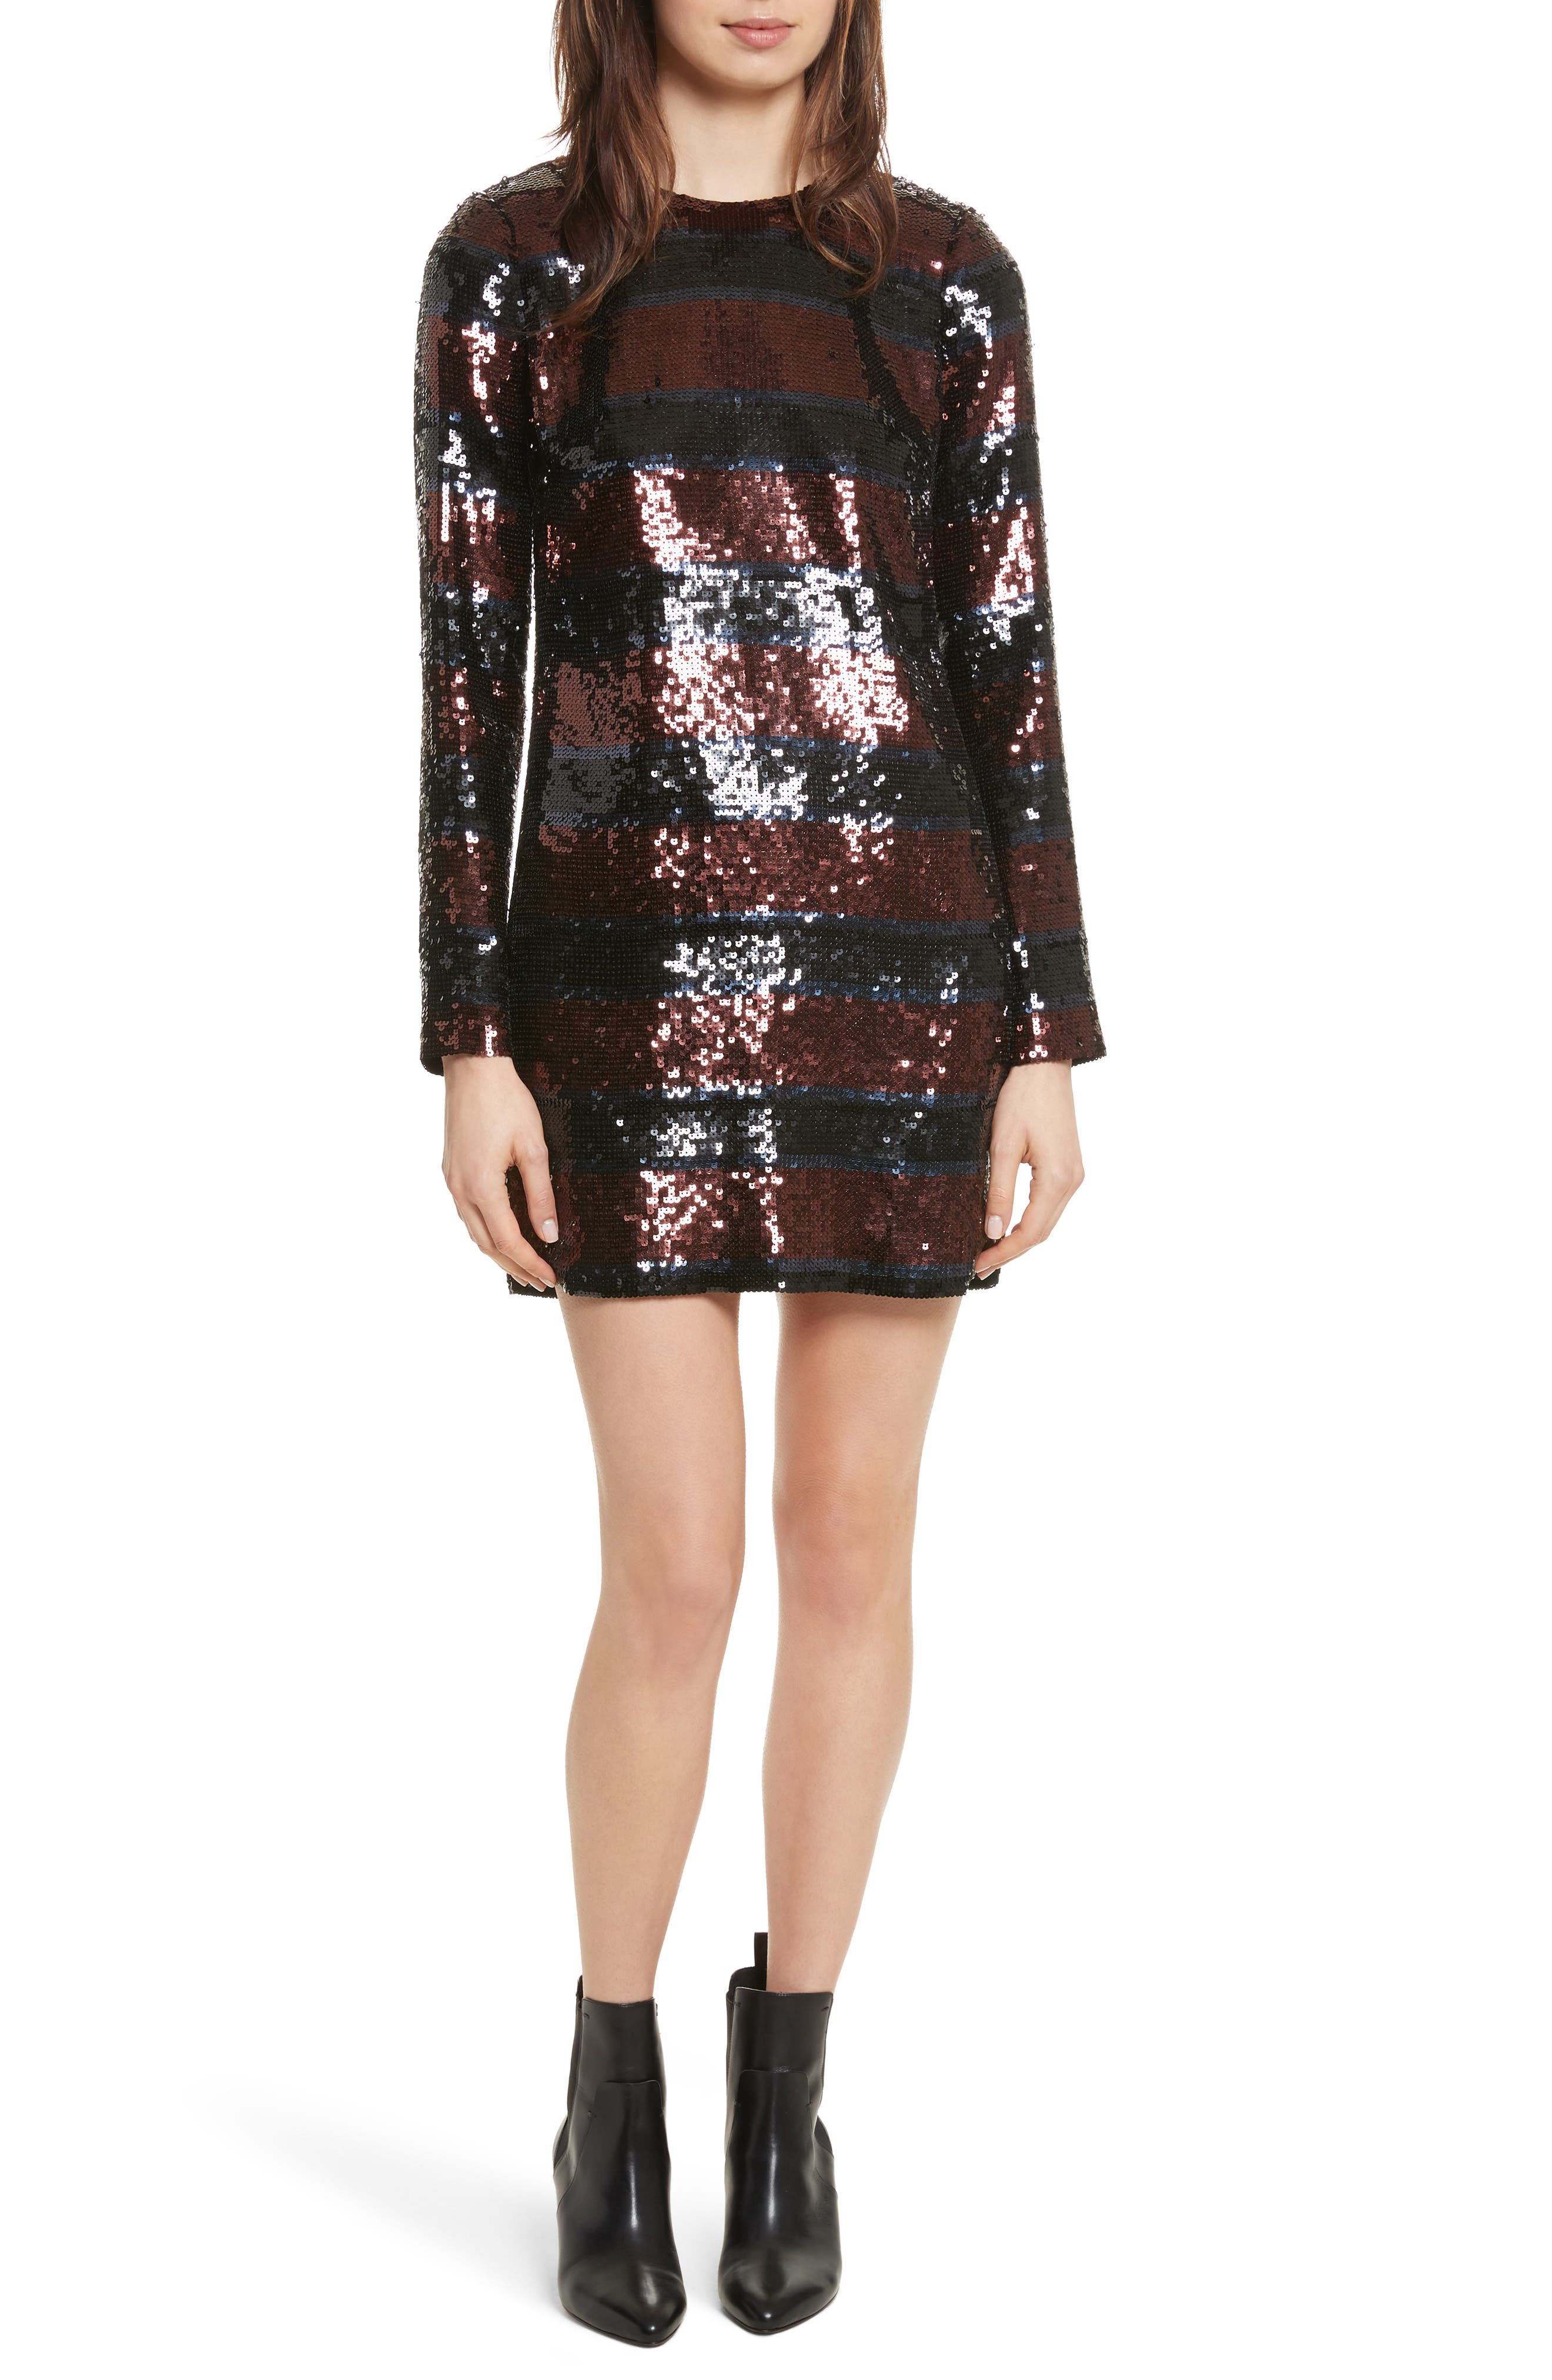 Veronica Beard Breakers Sequin Dress